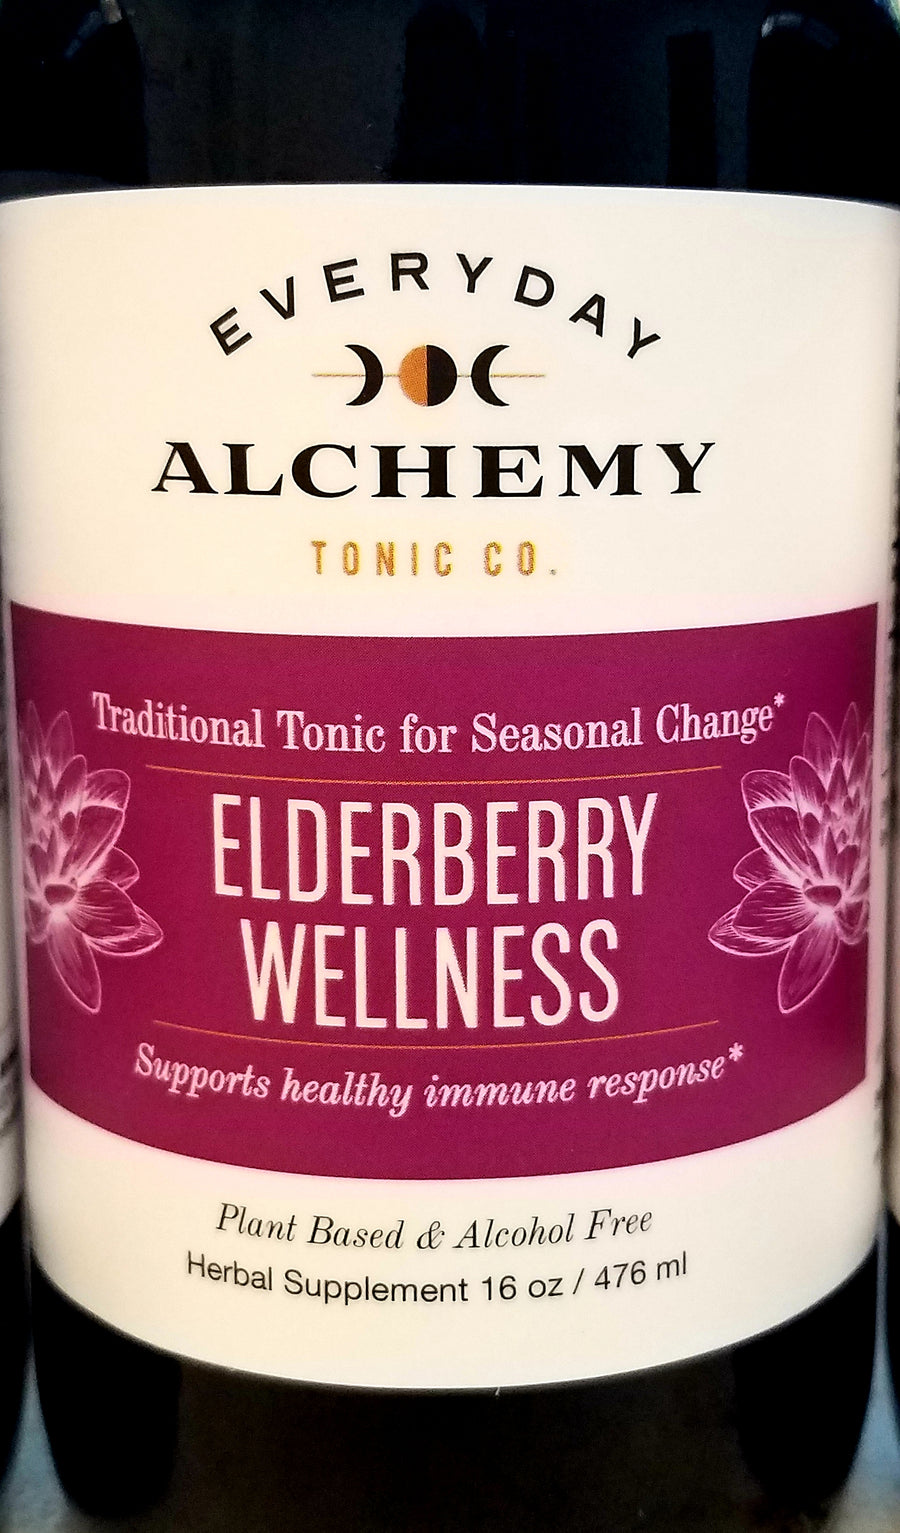 Elderberry Wellness